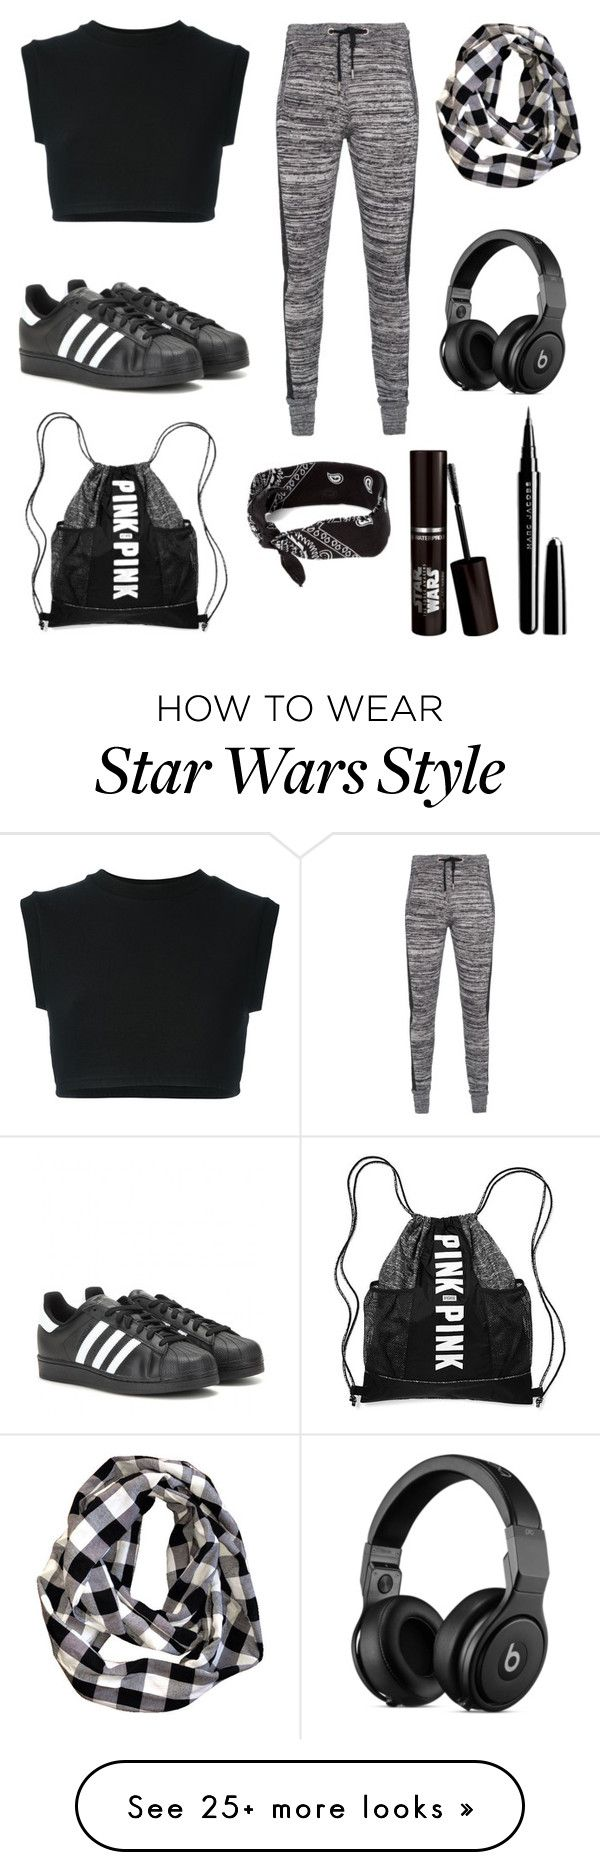 Untitled #198 by bethsalash on Polyvore featuring adidas Originals, adidas, Zoe Karssen, claire's and Marc Jacobs